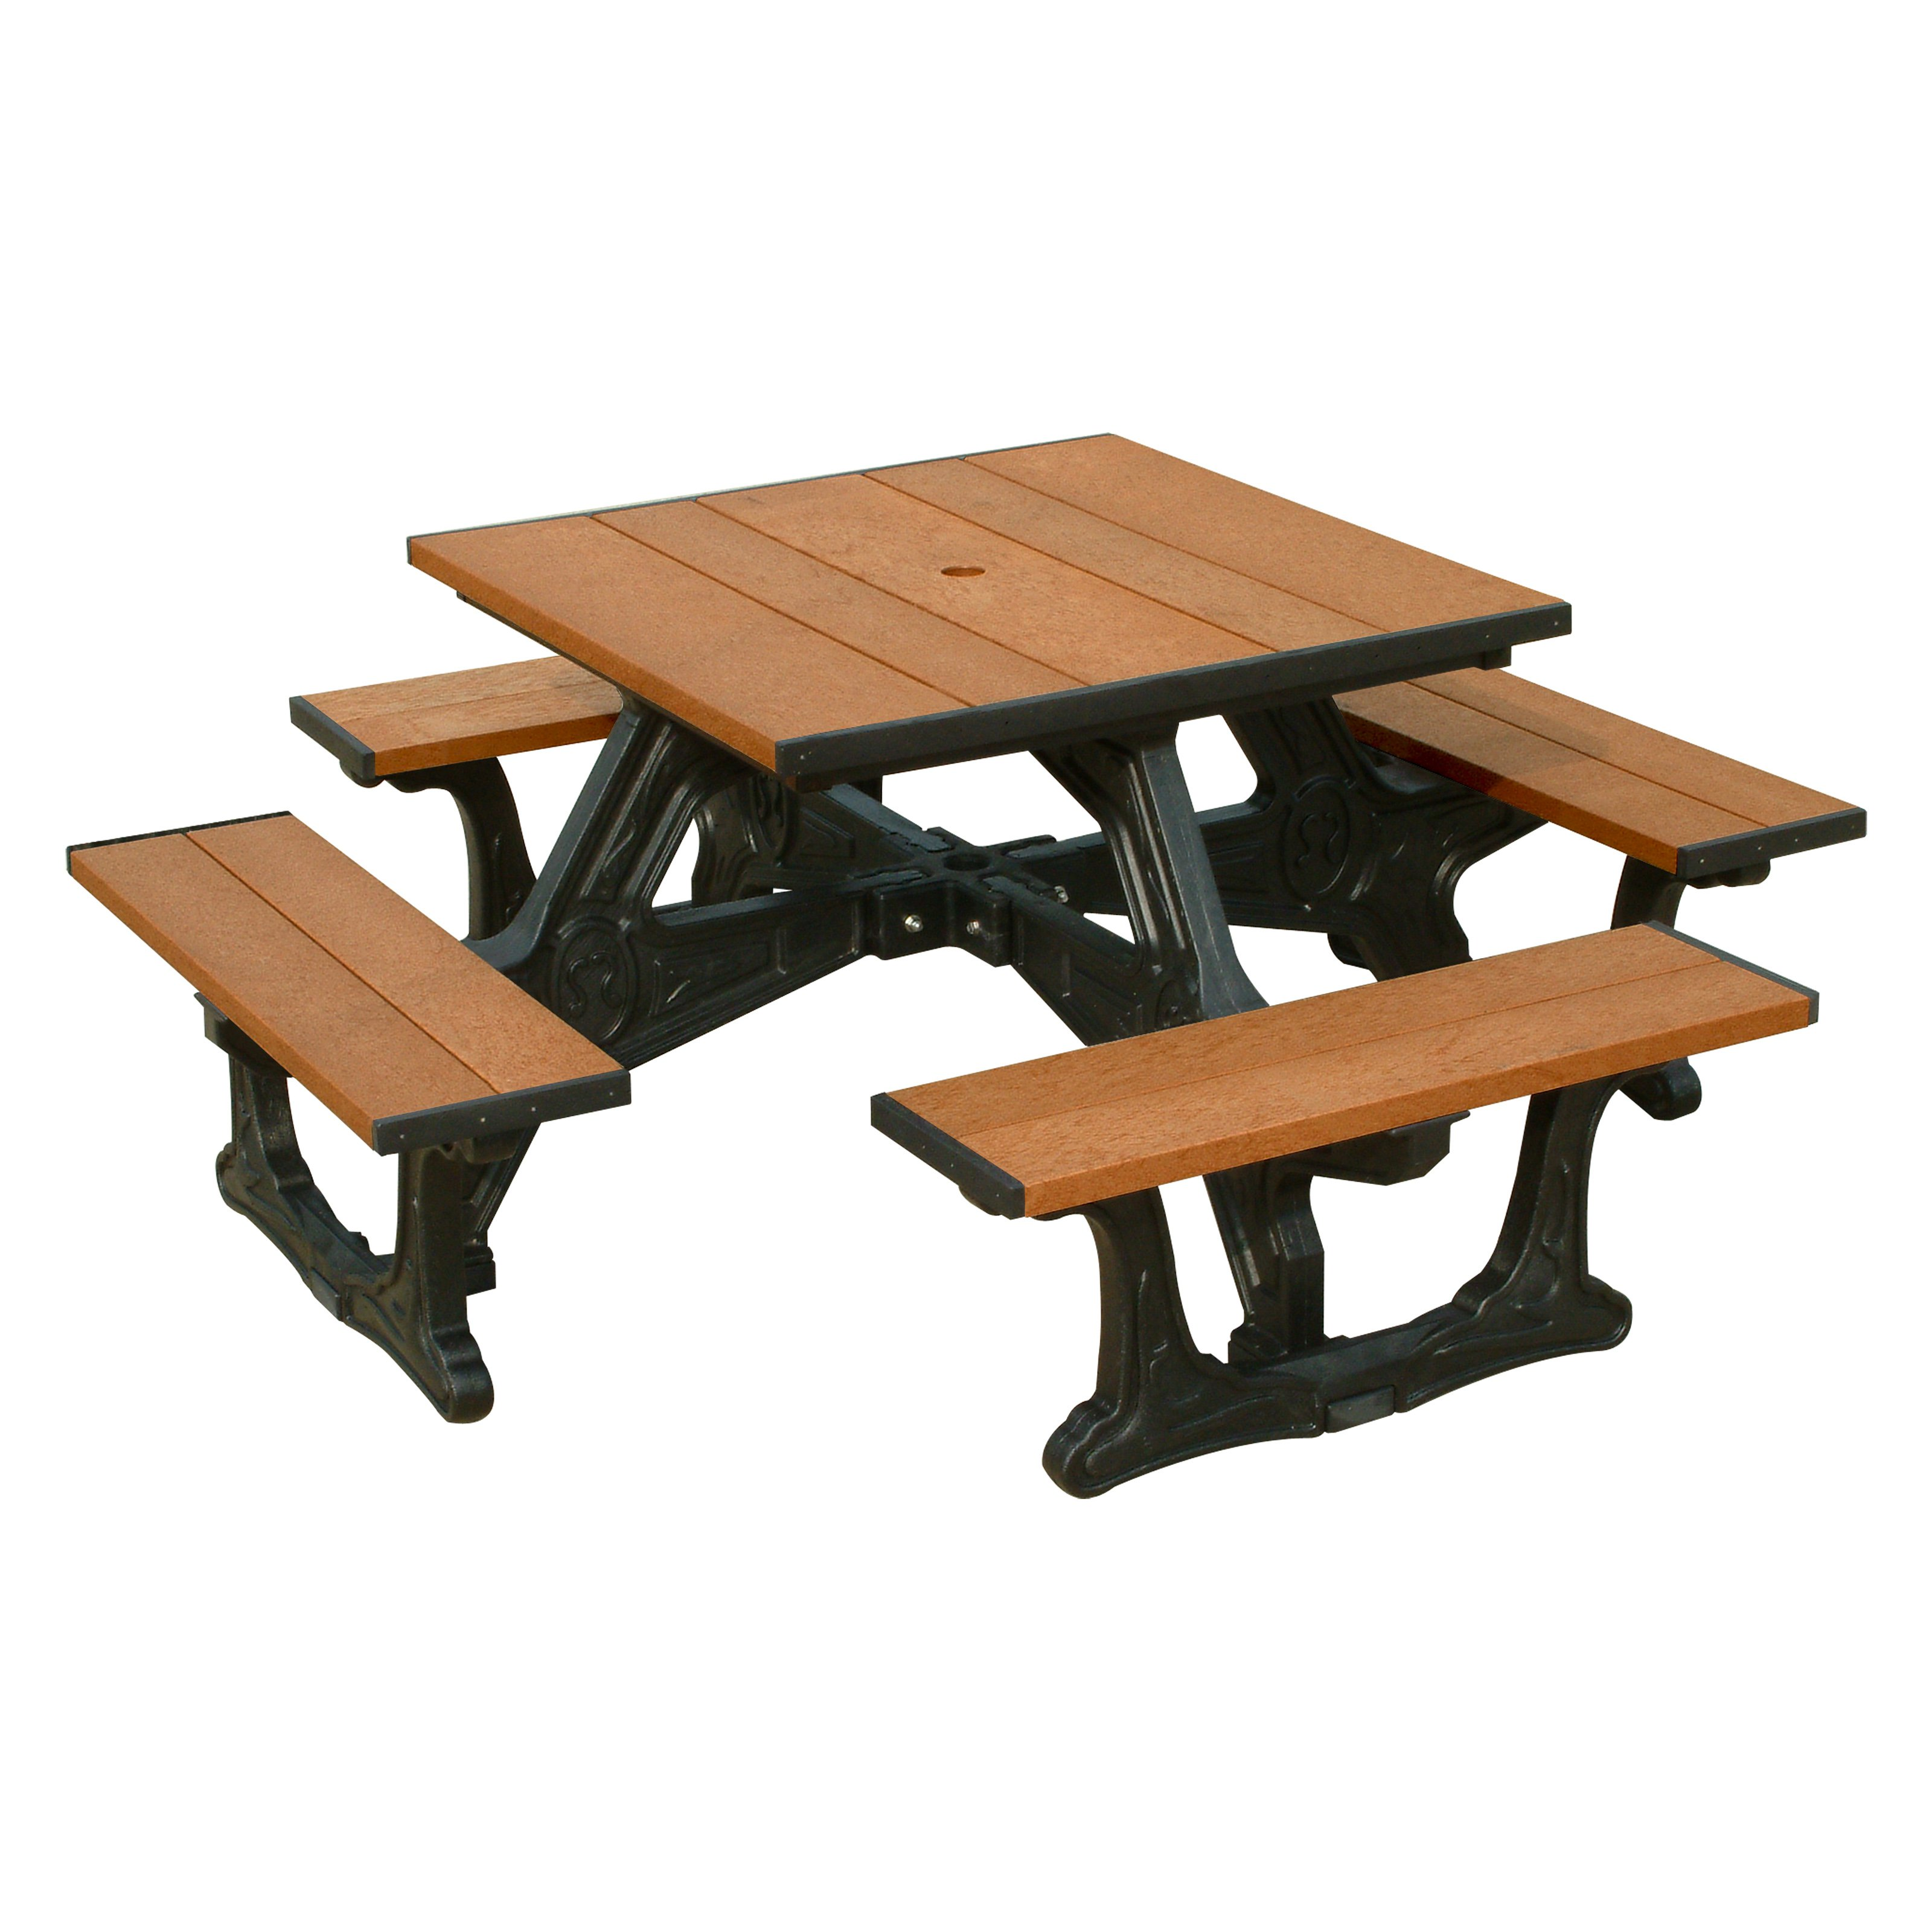 Polly Products Town Square Recycled Plastic Picnic Table